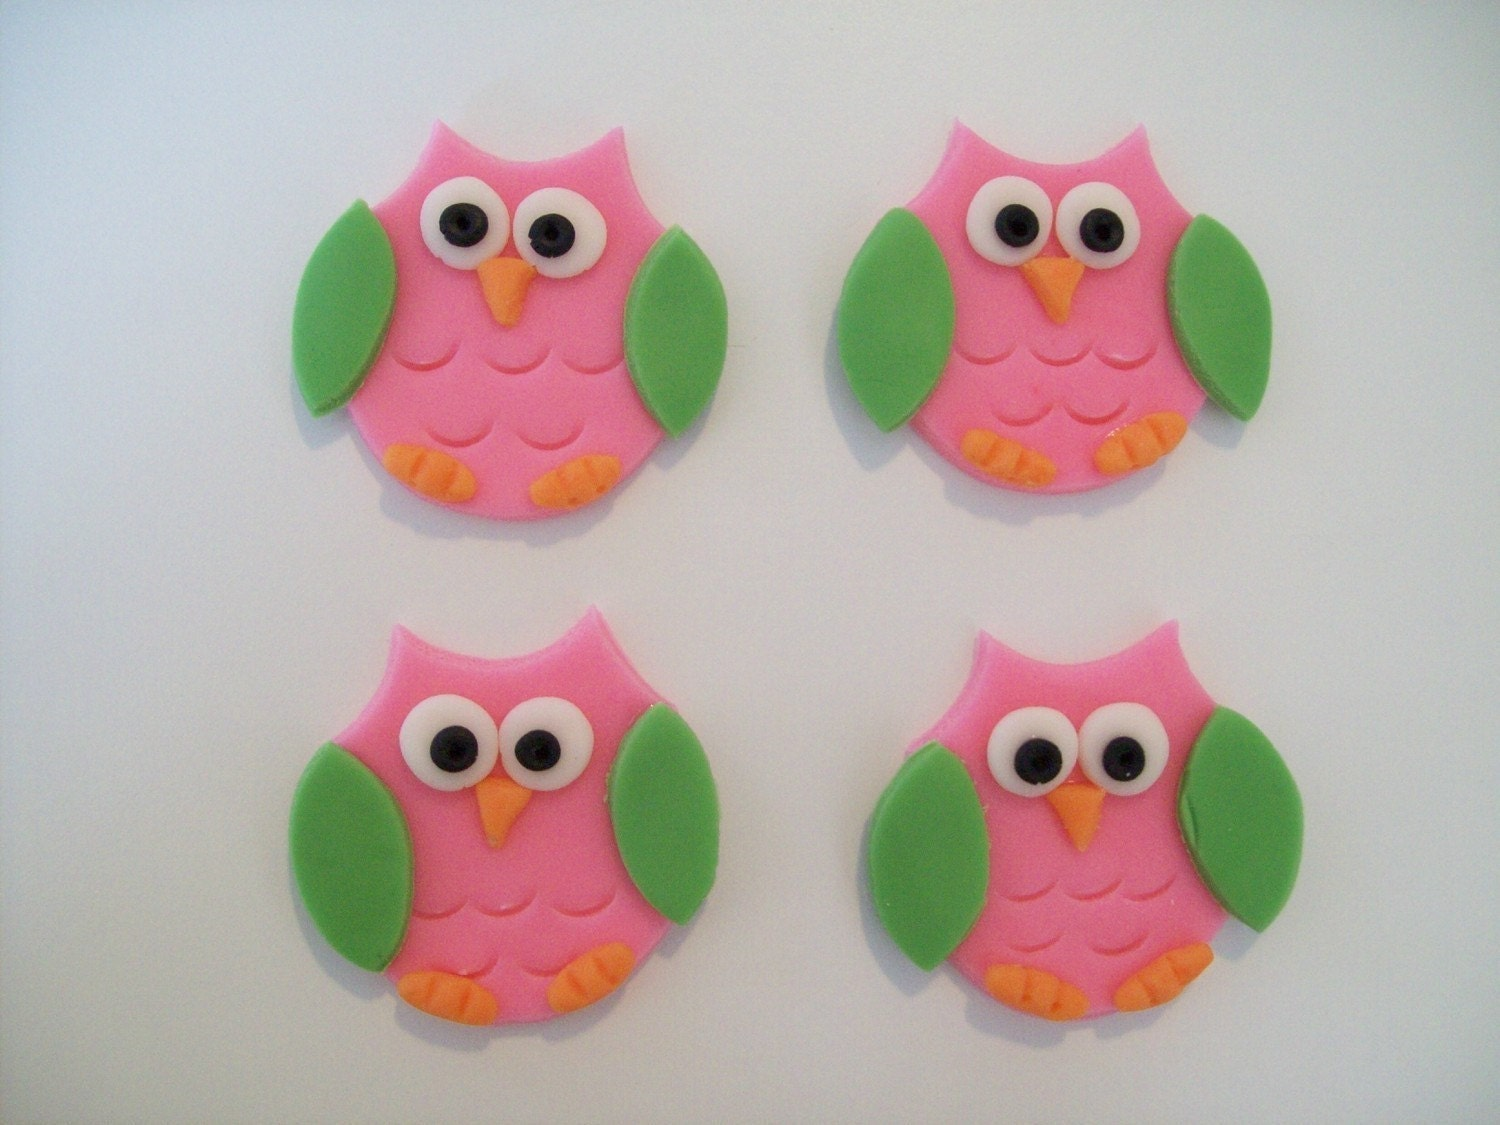 Cake Toppers In Fondant : Fondant Owl Cupcake Toppers